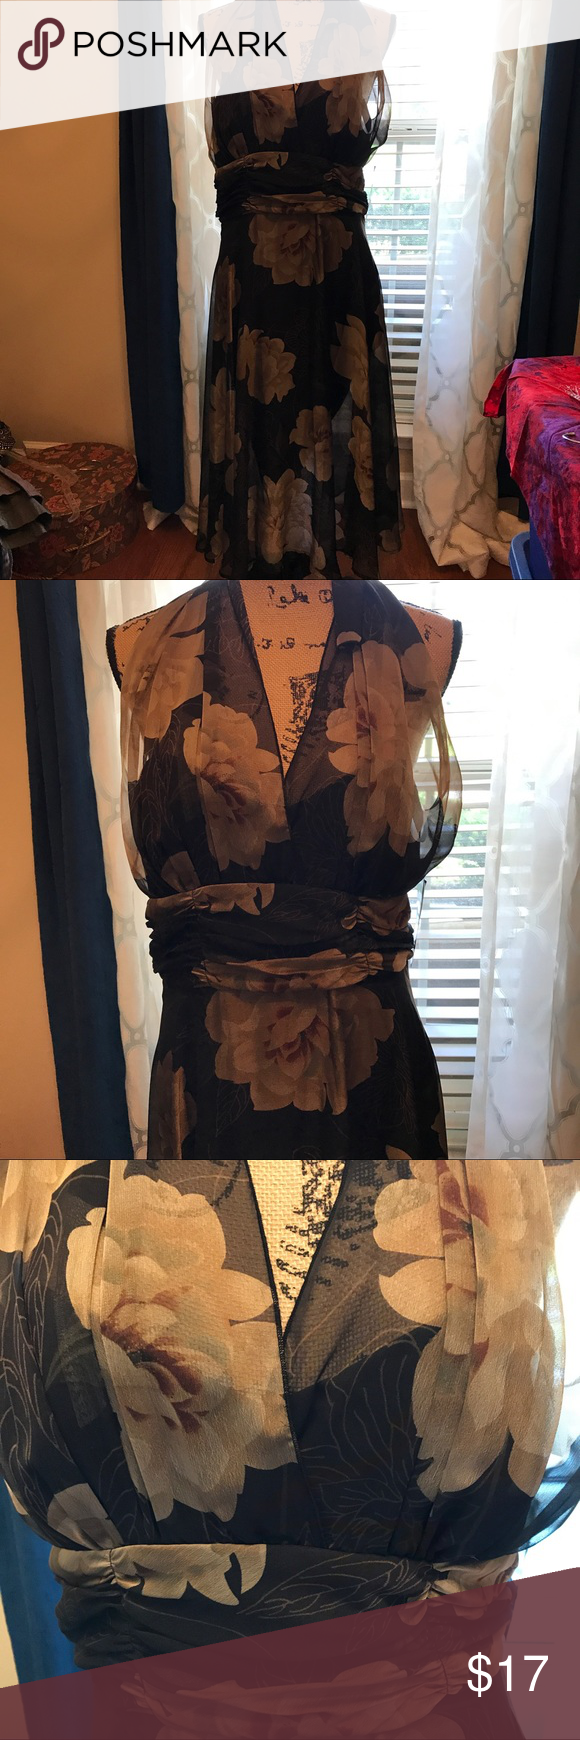 NWT Connected brown floral halter dress. Size 14 NWT really pretty floral brown dress. Halter style. Great for party 🎉 or wedding 👰 or a night out. Has cummerbund styling around waist. Very flattering on. Connected Dresses